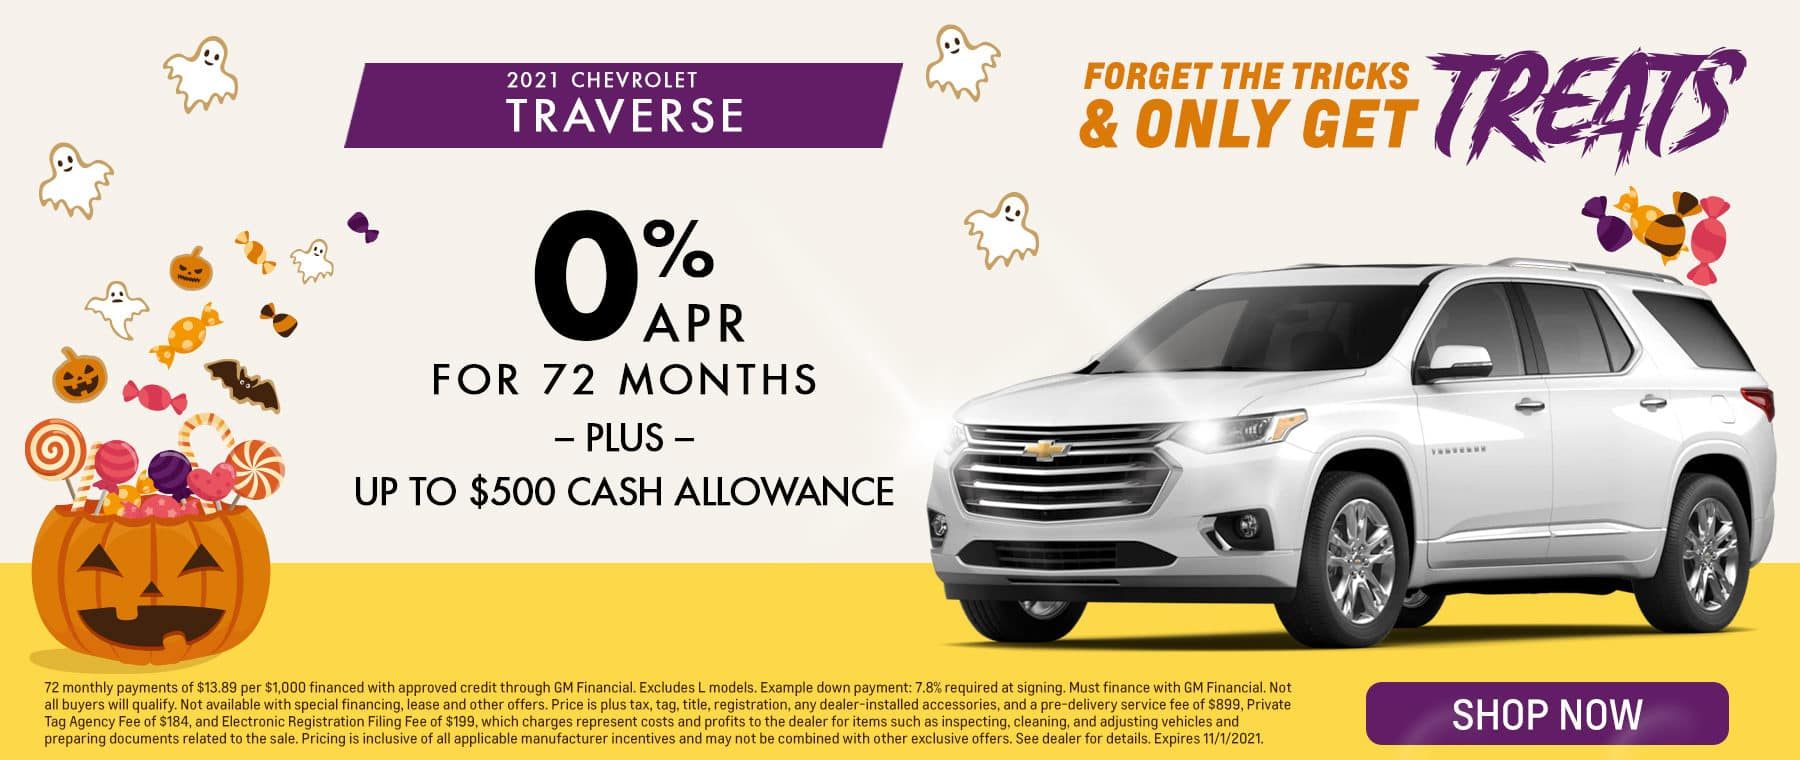 Forget The Tricks & Only Get Treats   2021 Chevrolet Traverse   0% APR For 72 Months – OR – Up To $500 Cash Allowance